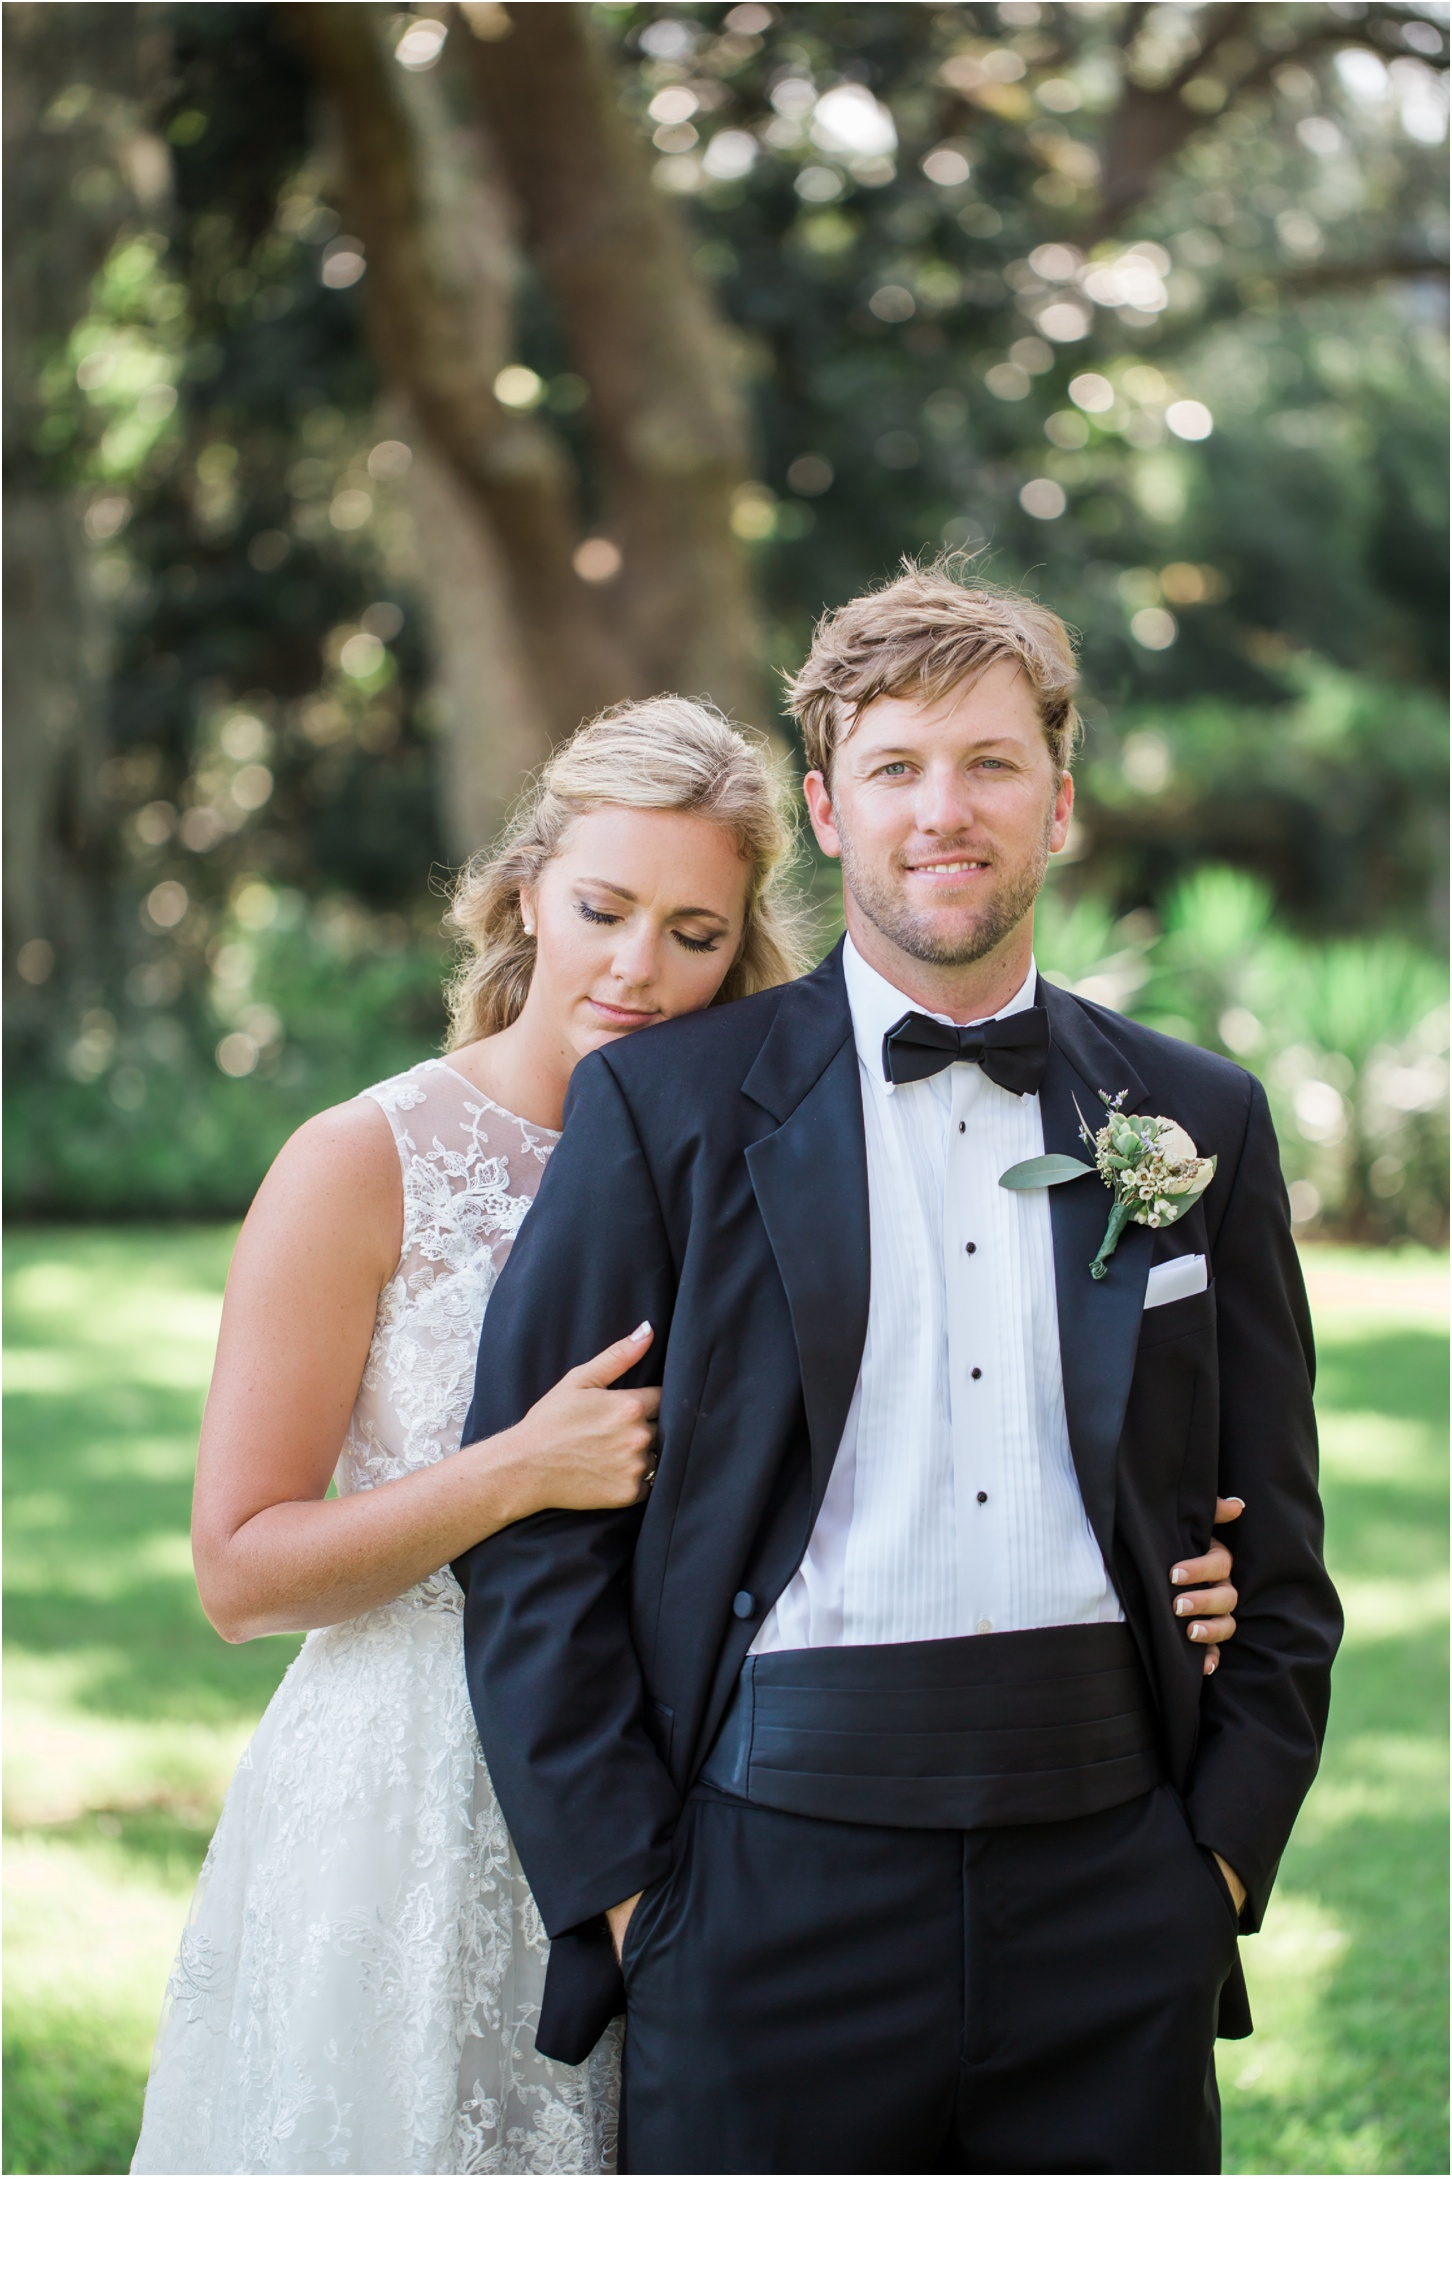 Rainey_Gregg_Photography_St._Simons_Island_Georgia_California_Wedding_Portrait_Photography_0065.jpg